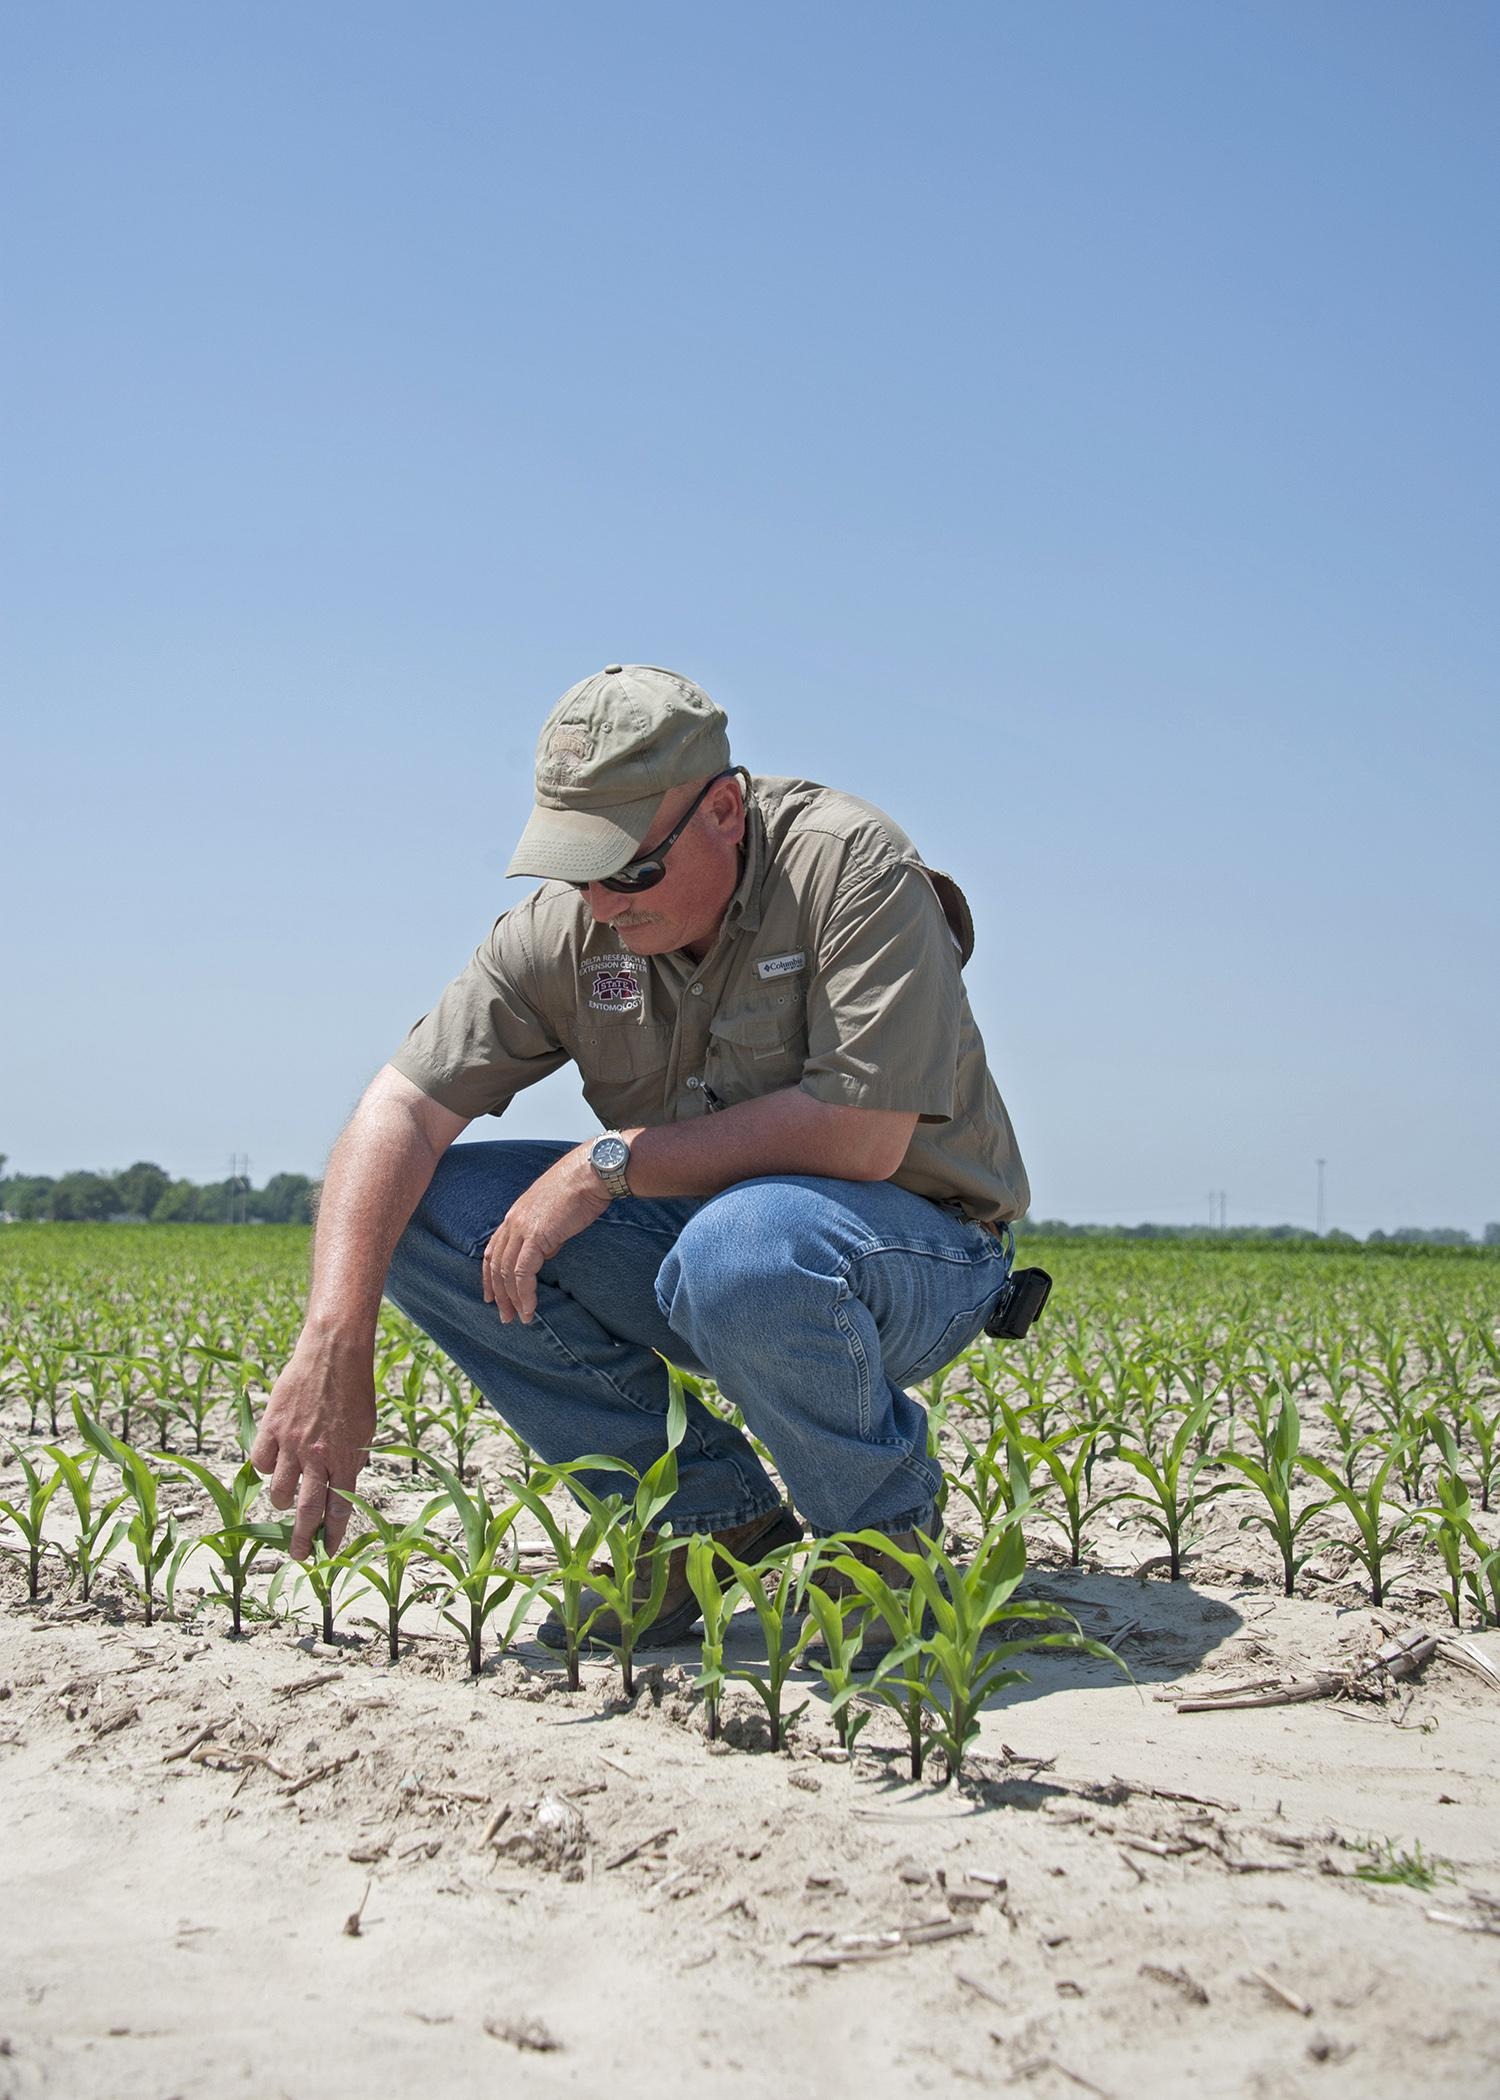 Don Cook, a research entomologist with the Mississippi Agricultural and Forestry Experiment Station and the Mississippi State University Extension Service's Delta Research and Extension Center, inspects young corn for early-season insect damage. (File photo by MSU Ag Communications/Kat Lawrence)